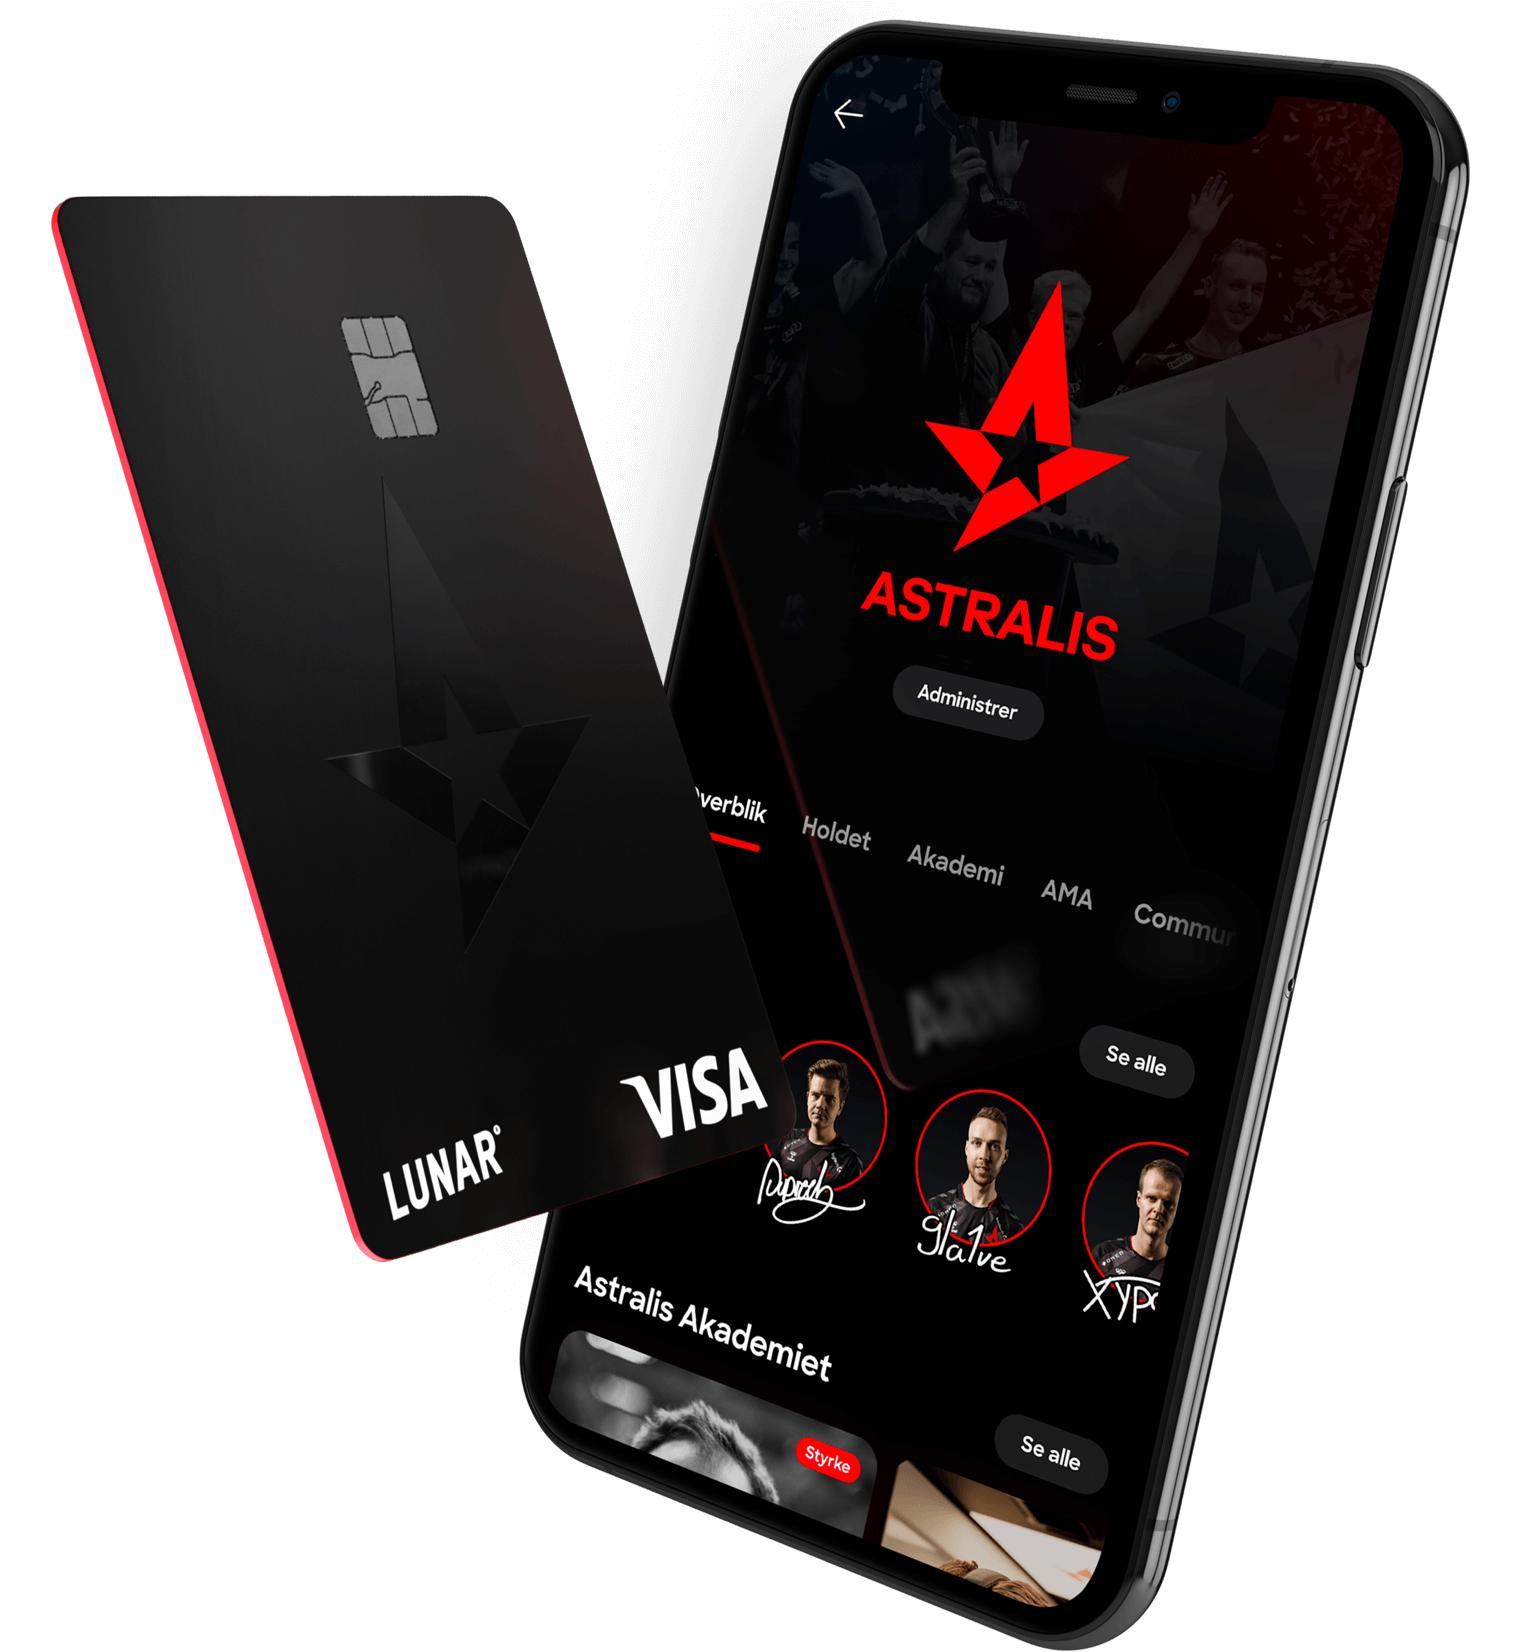 Get an unique Astralis card and access to exclusive content in the Lunar app.